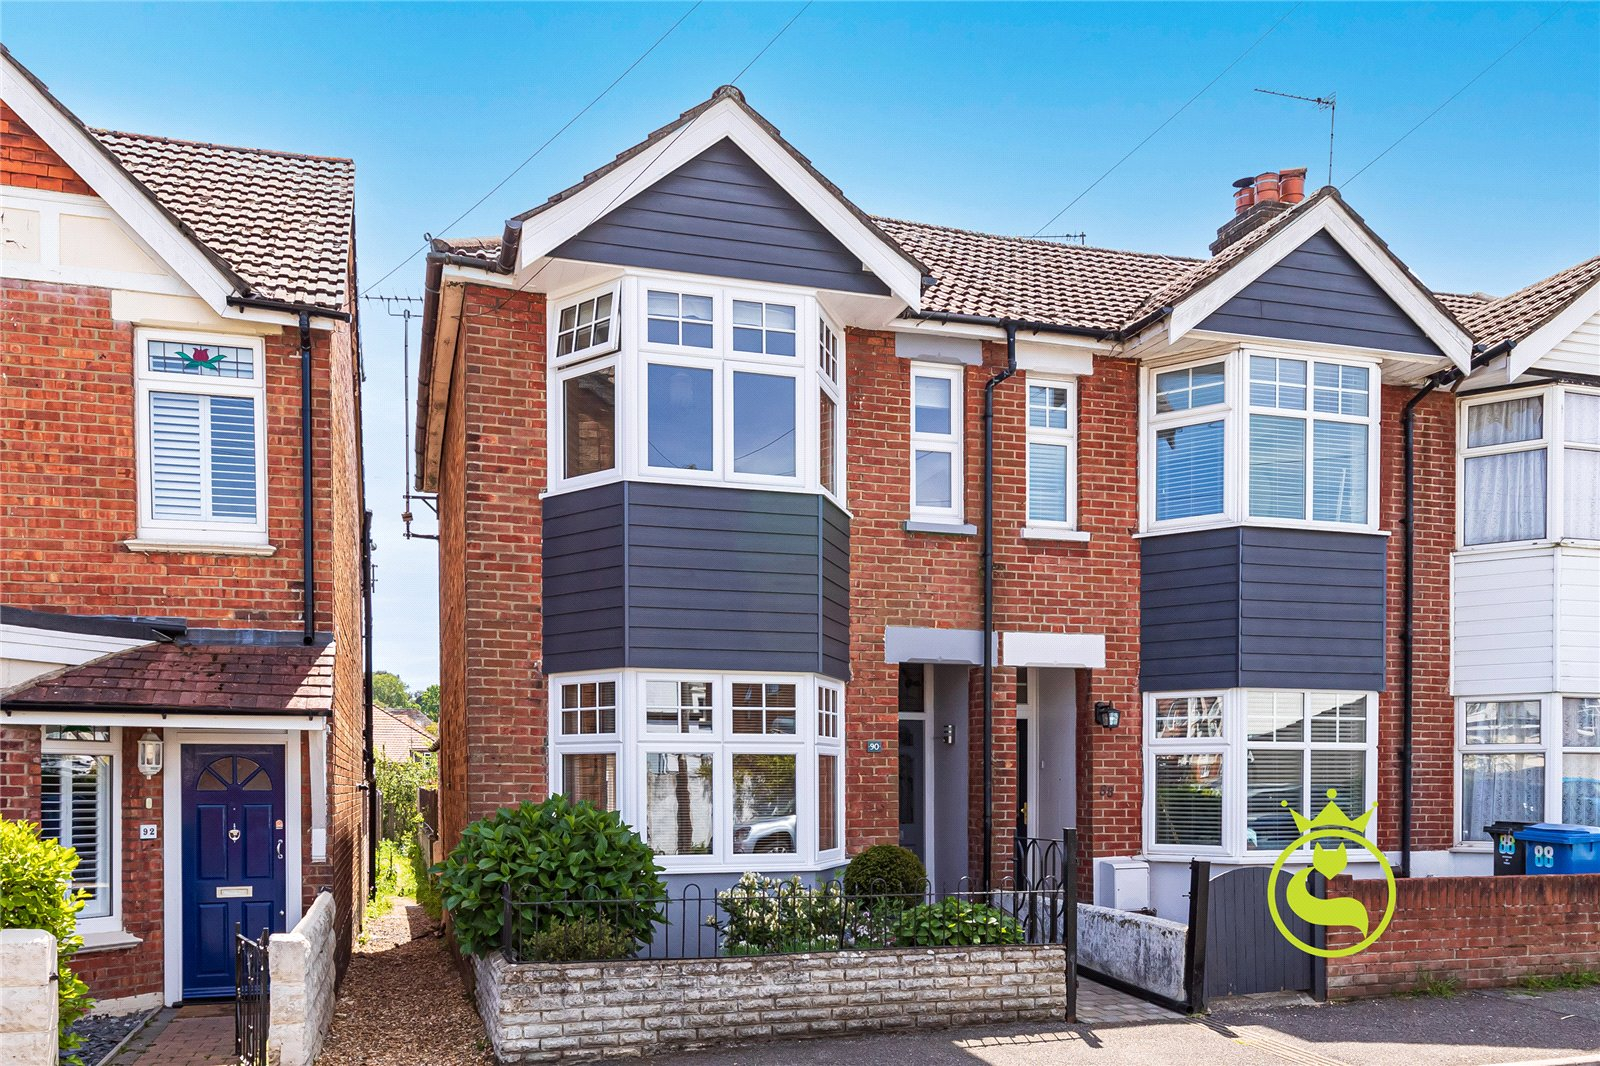 2 bed house for sale in Florence Road, Lower Parkstone  - Property Image 1